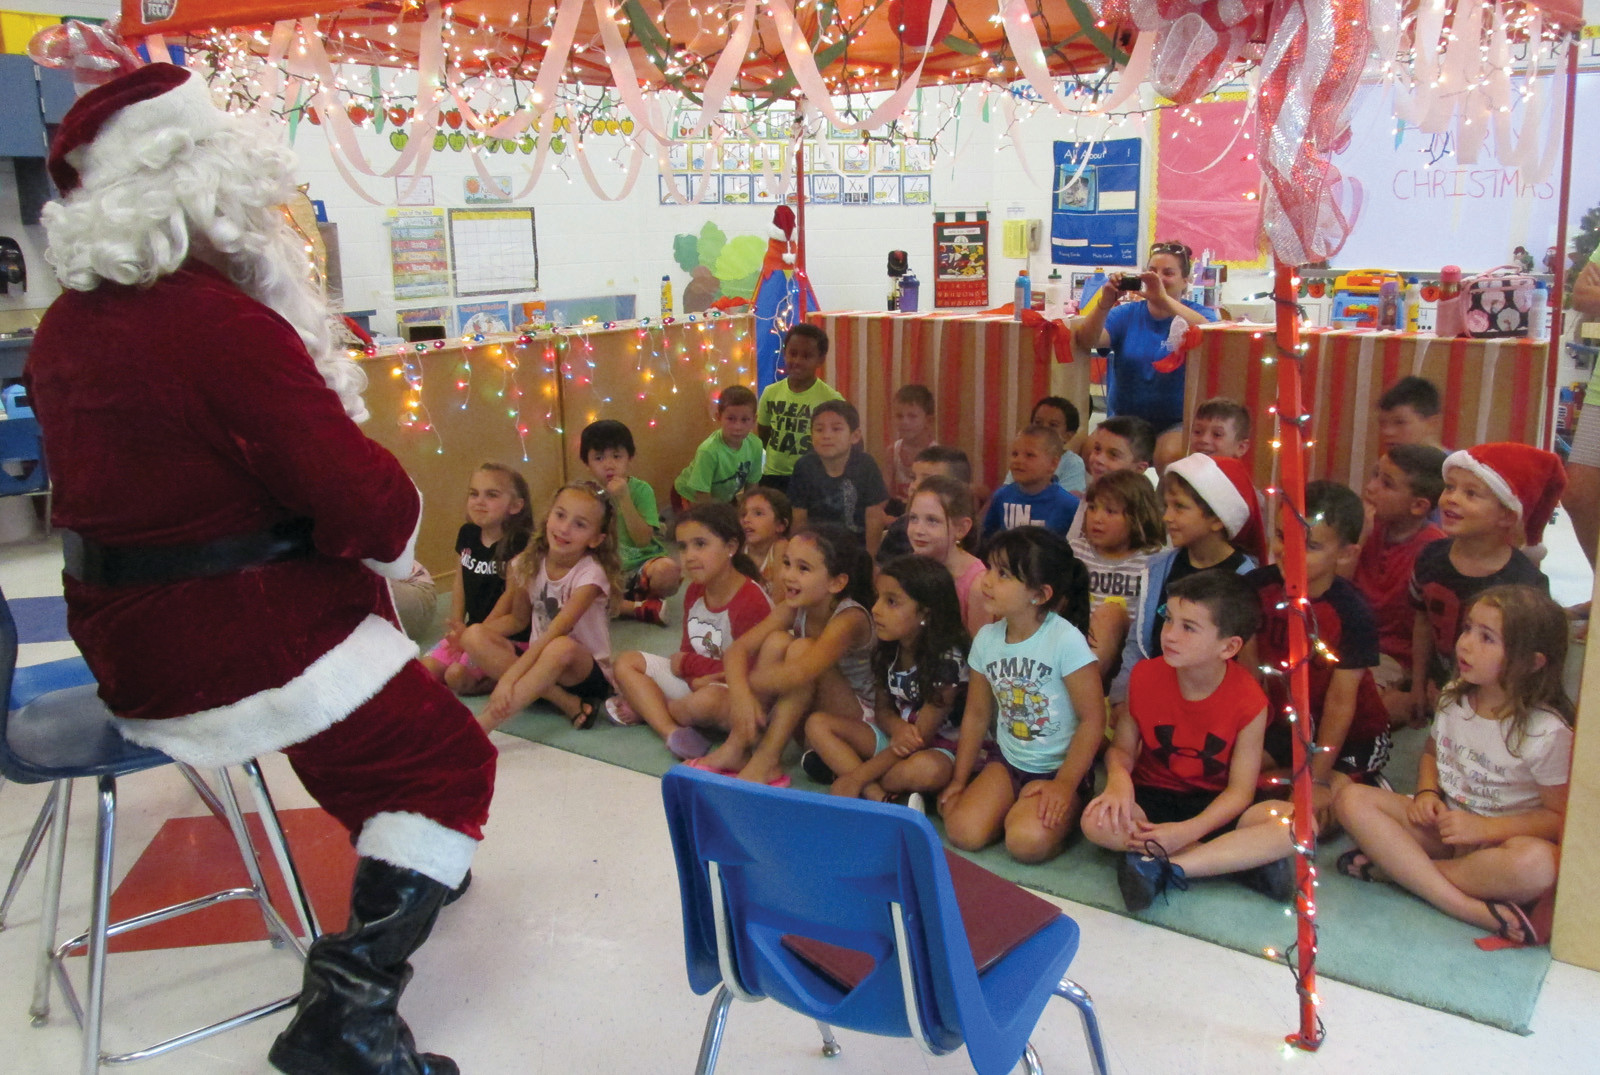 SPECIAL REQUESTS: Santa Claus sits on a chair and fields a variety of special requests from children who attended the unique Summer Explore program.